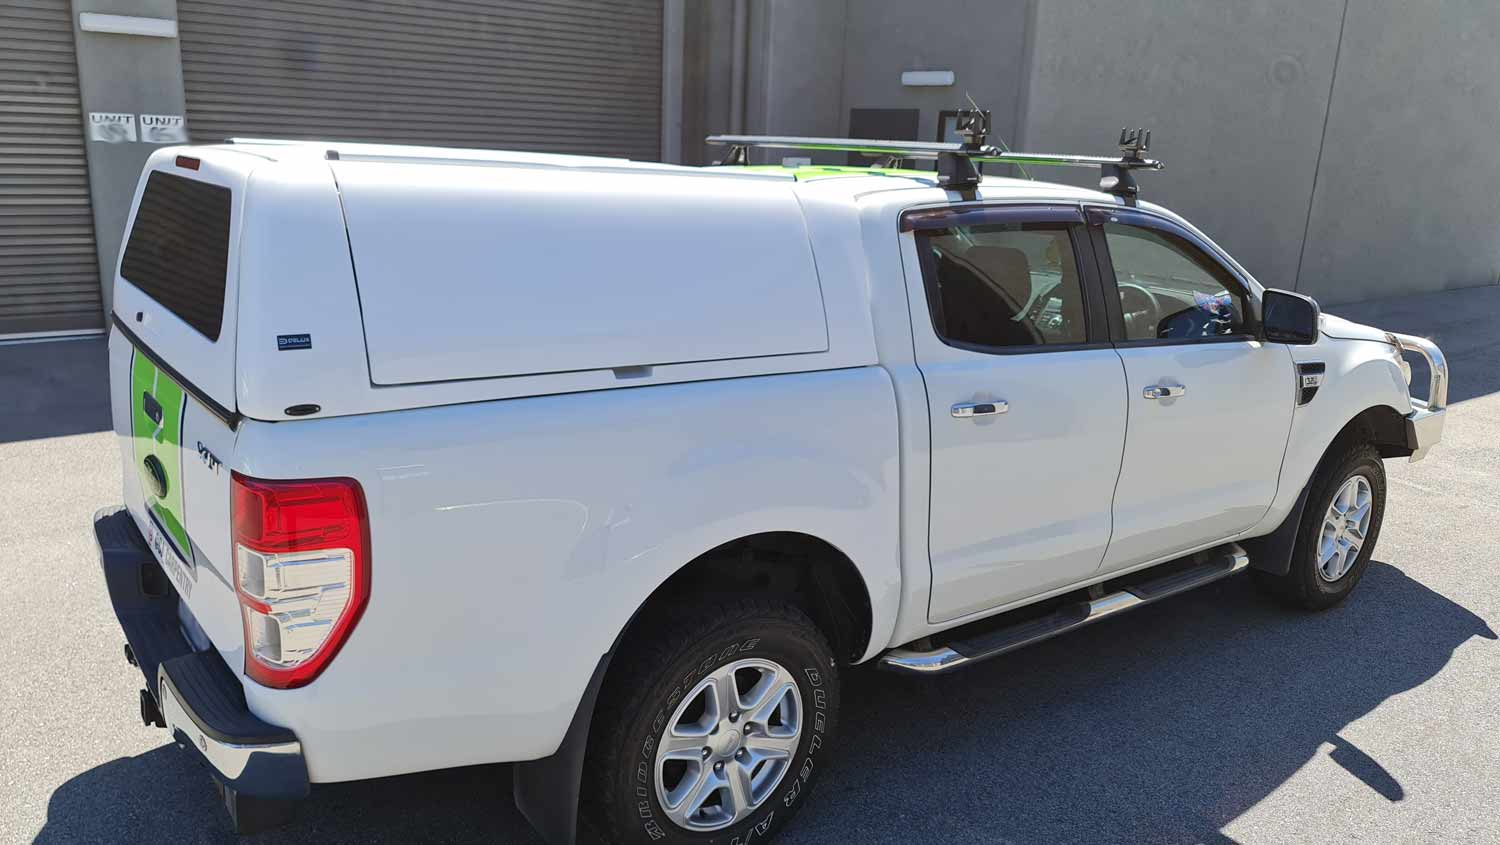 Force Pro Canopy on Ford Ranger 2016 - delux 3x4 - image 3